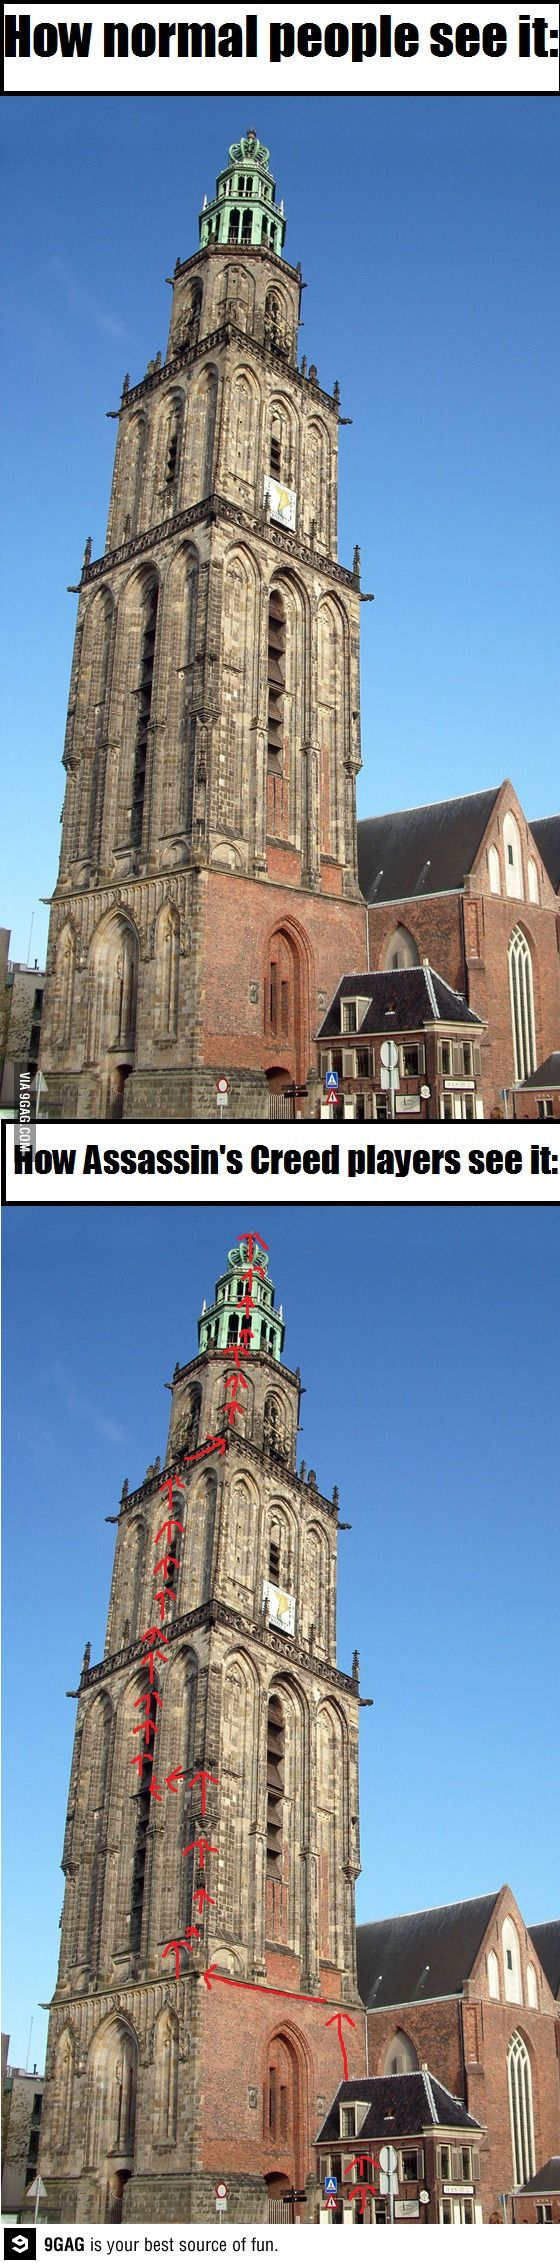 Assassins Creed perspective